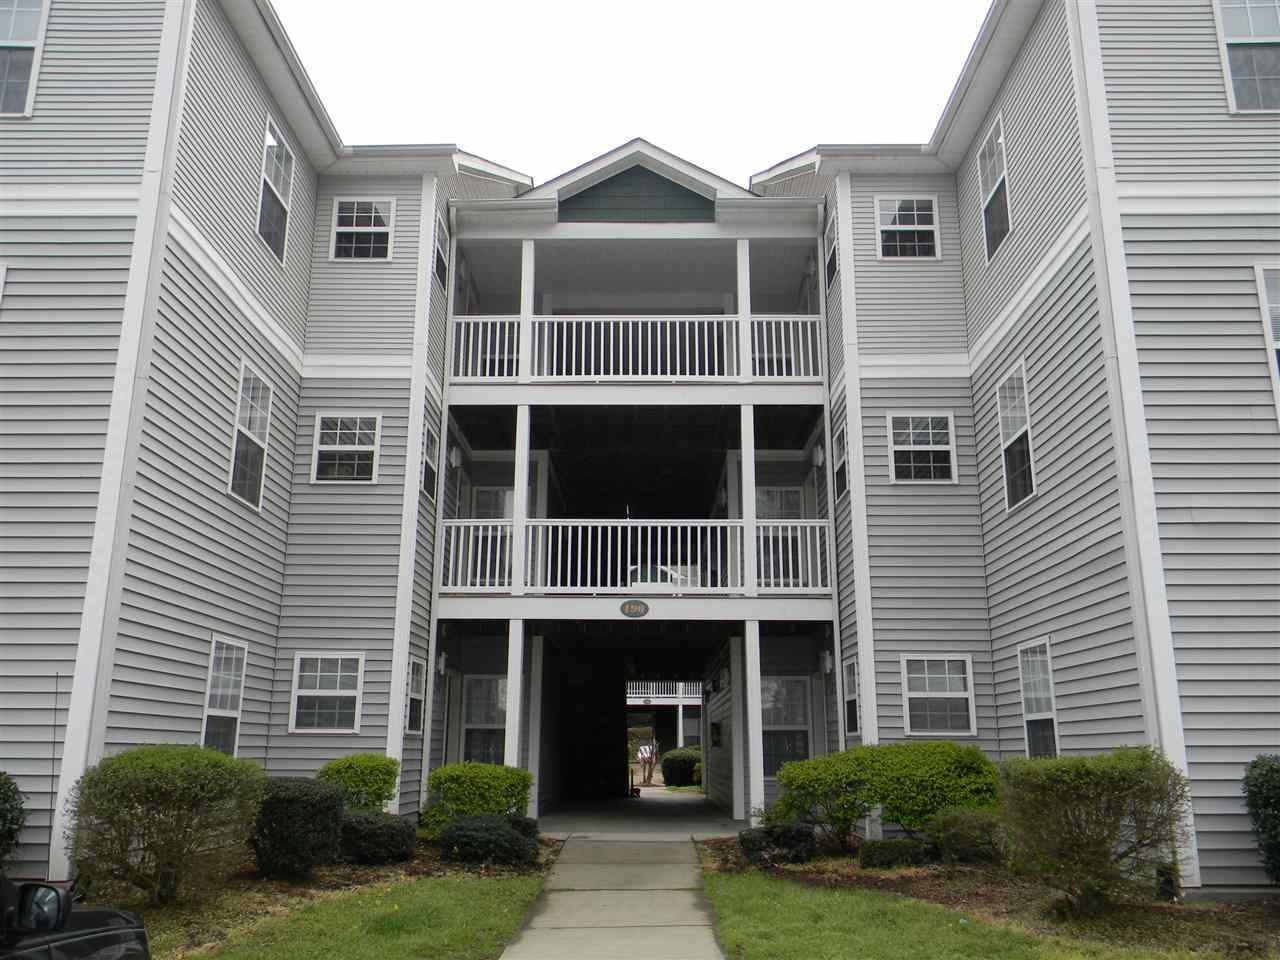 Rental Homes for Rent, ListingId:34269524, location: 148H University Village Drive Central 29630